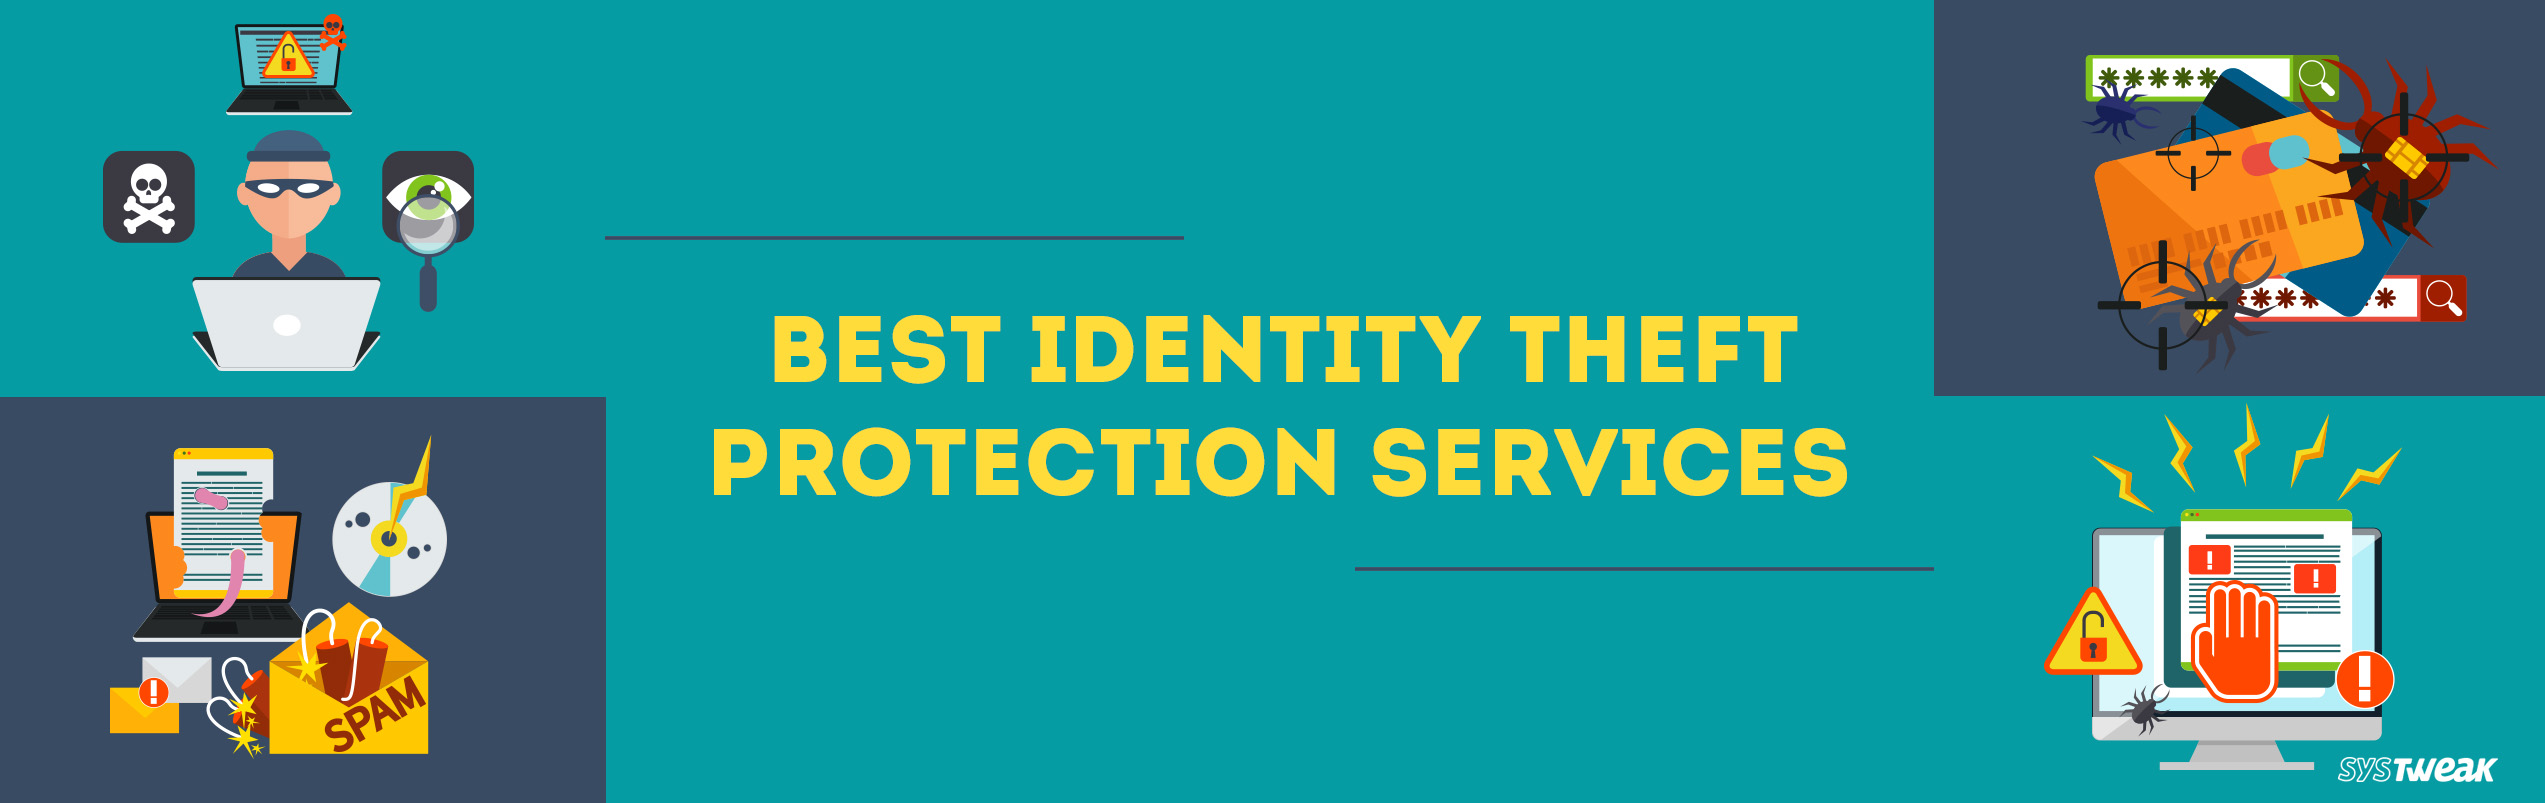 10 Best Identity Theft Protection Services 2018